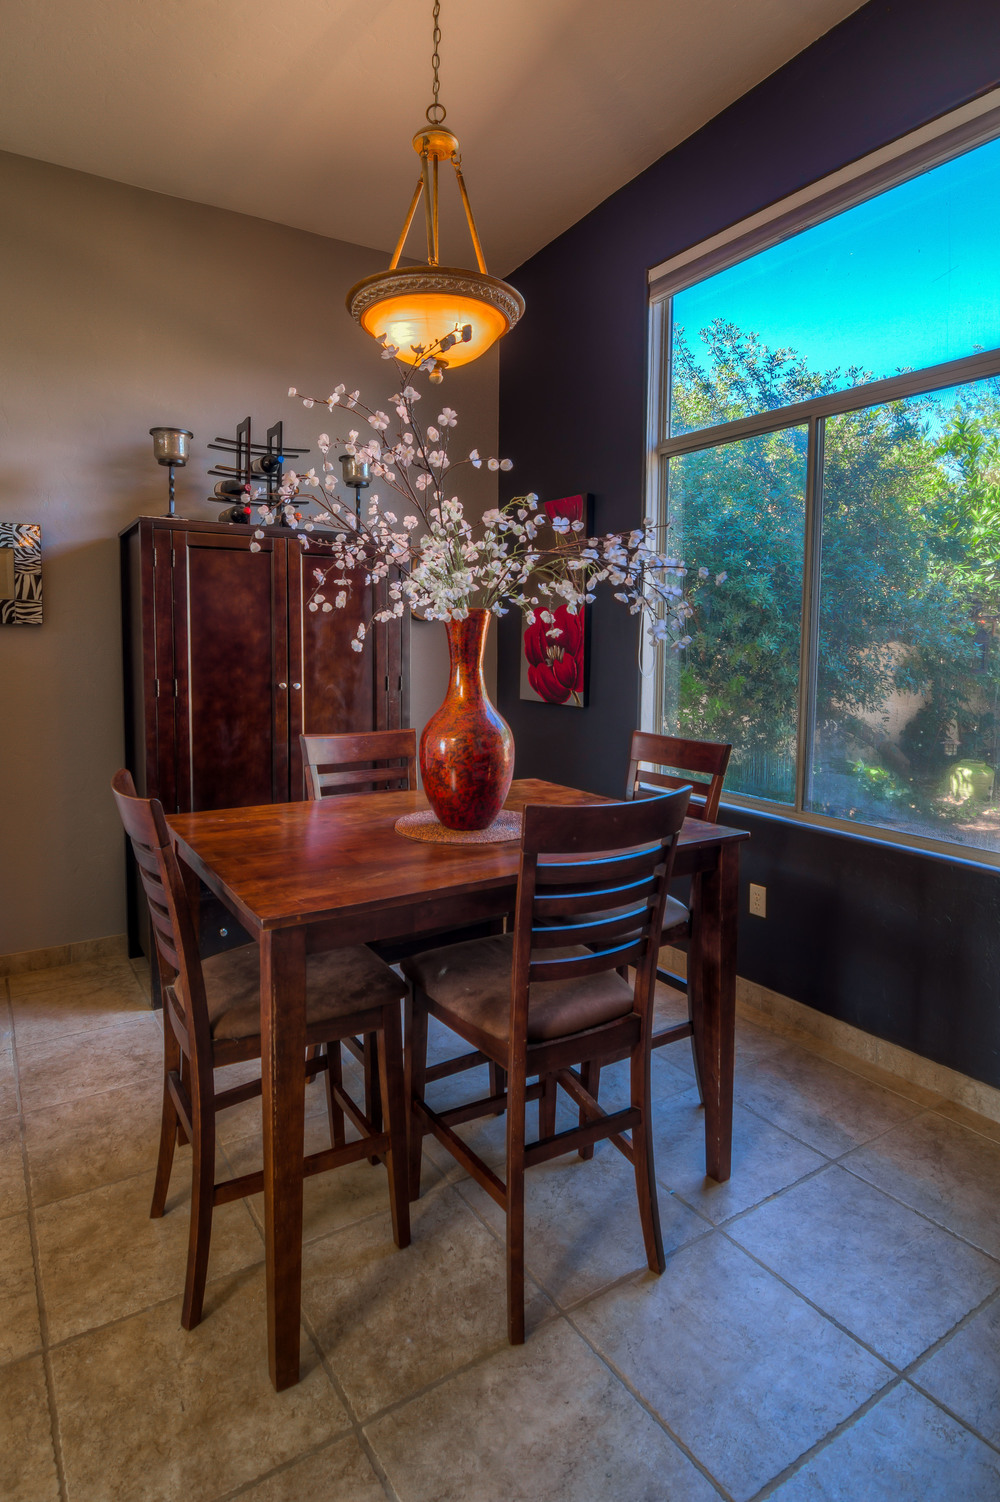 12 Dining Room photo c.jpg